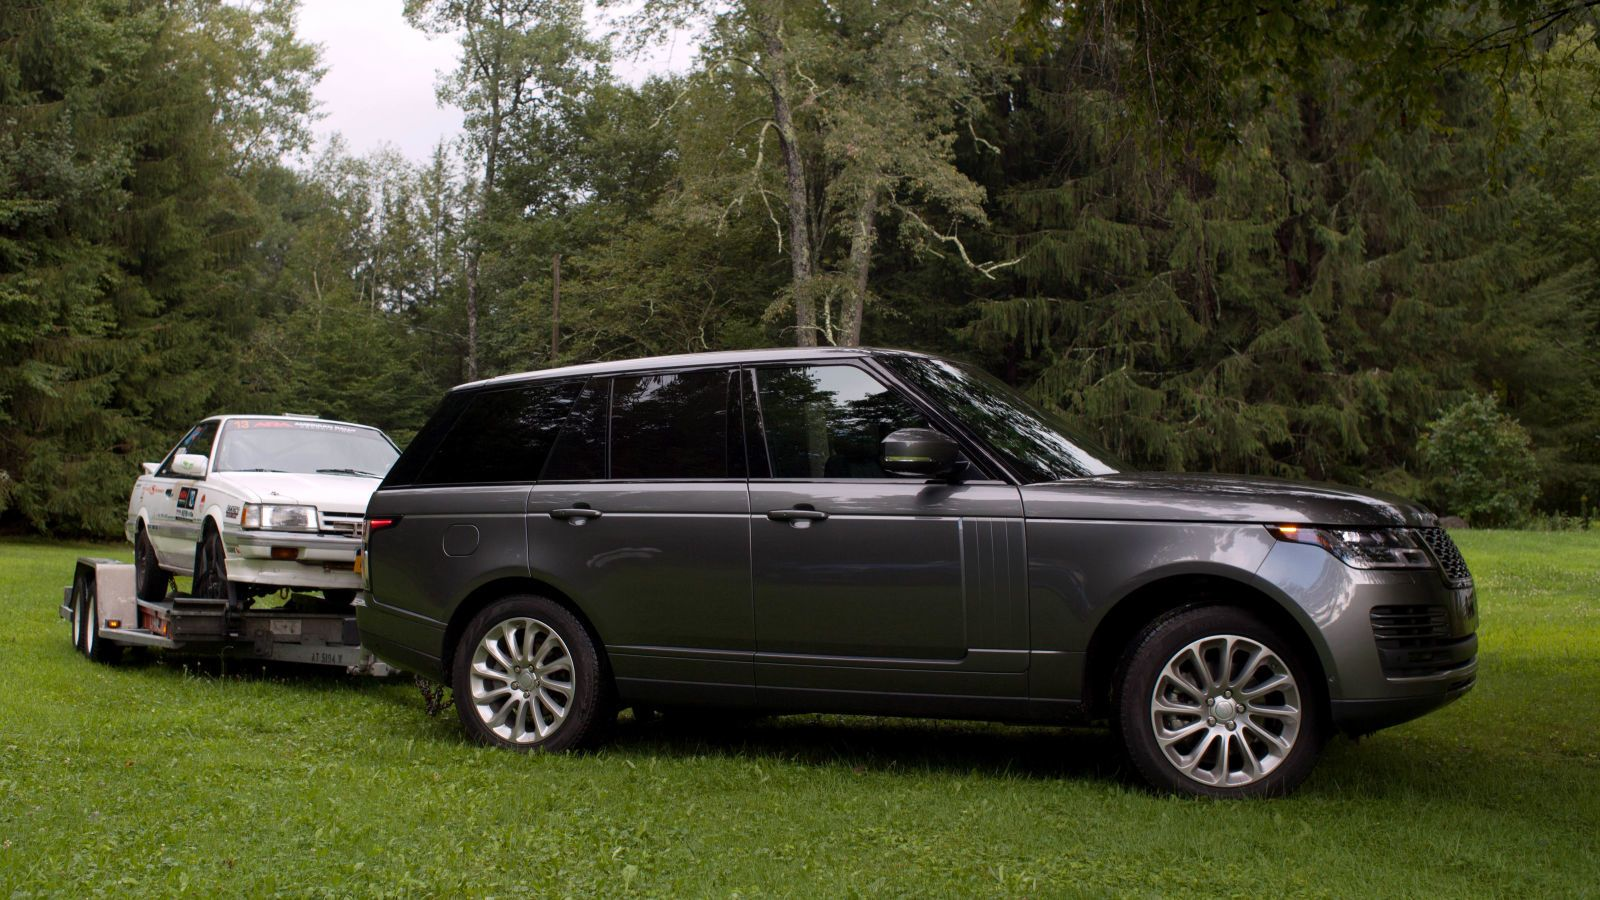 In A Towing Review Of The Range Rover Hse The Range Rover Provides A Great Towing Experience That S Satis Range Rover Hse Range Rover Range Rover Supercharged